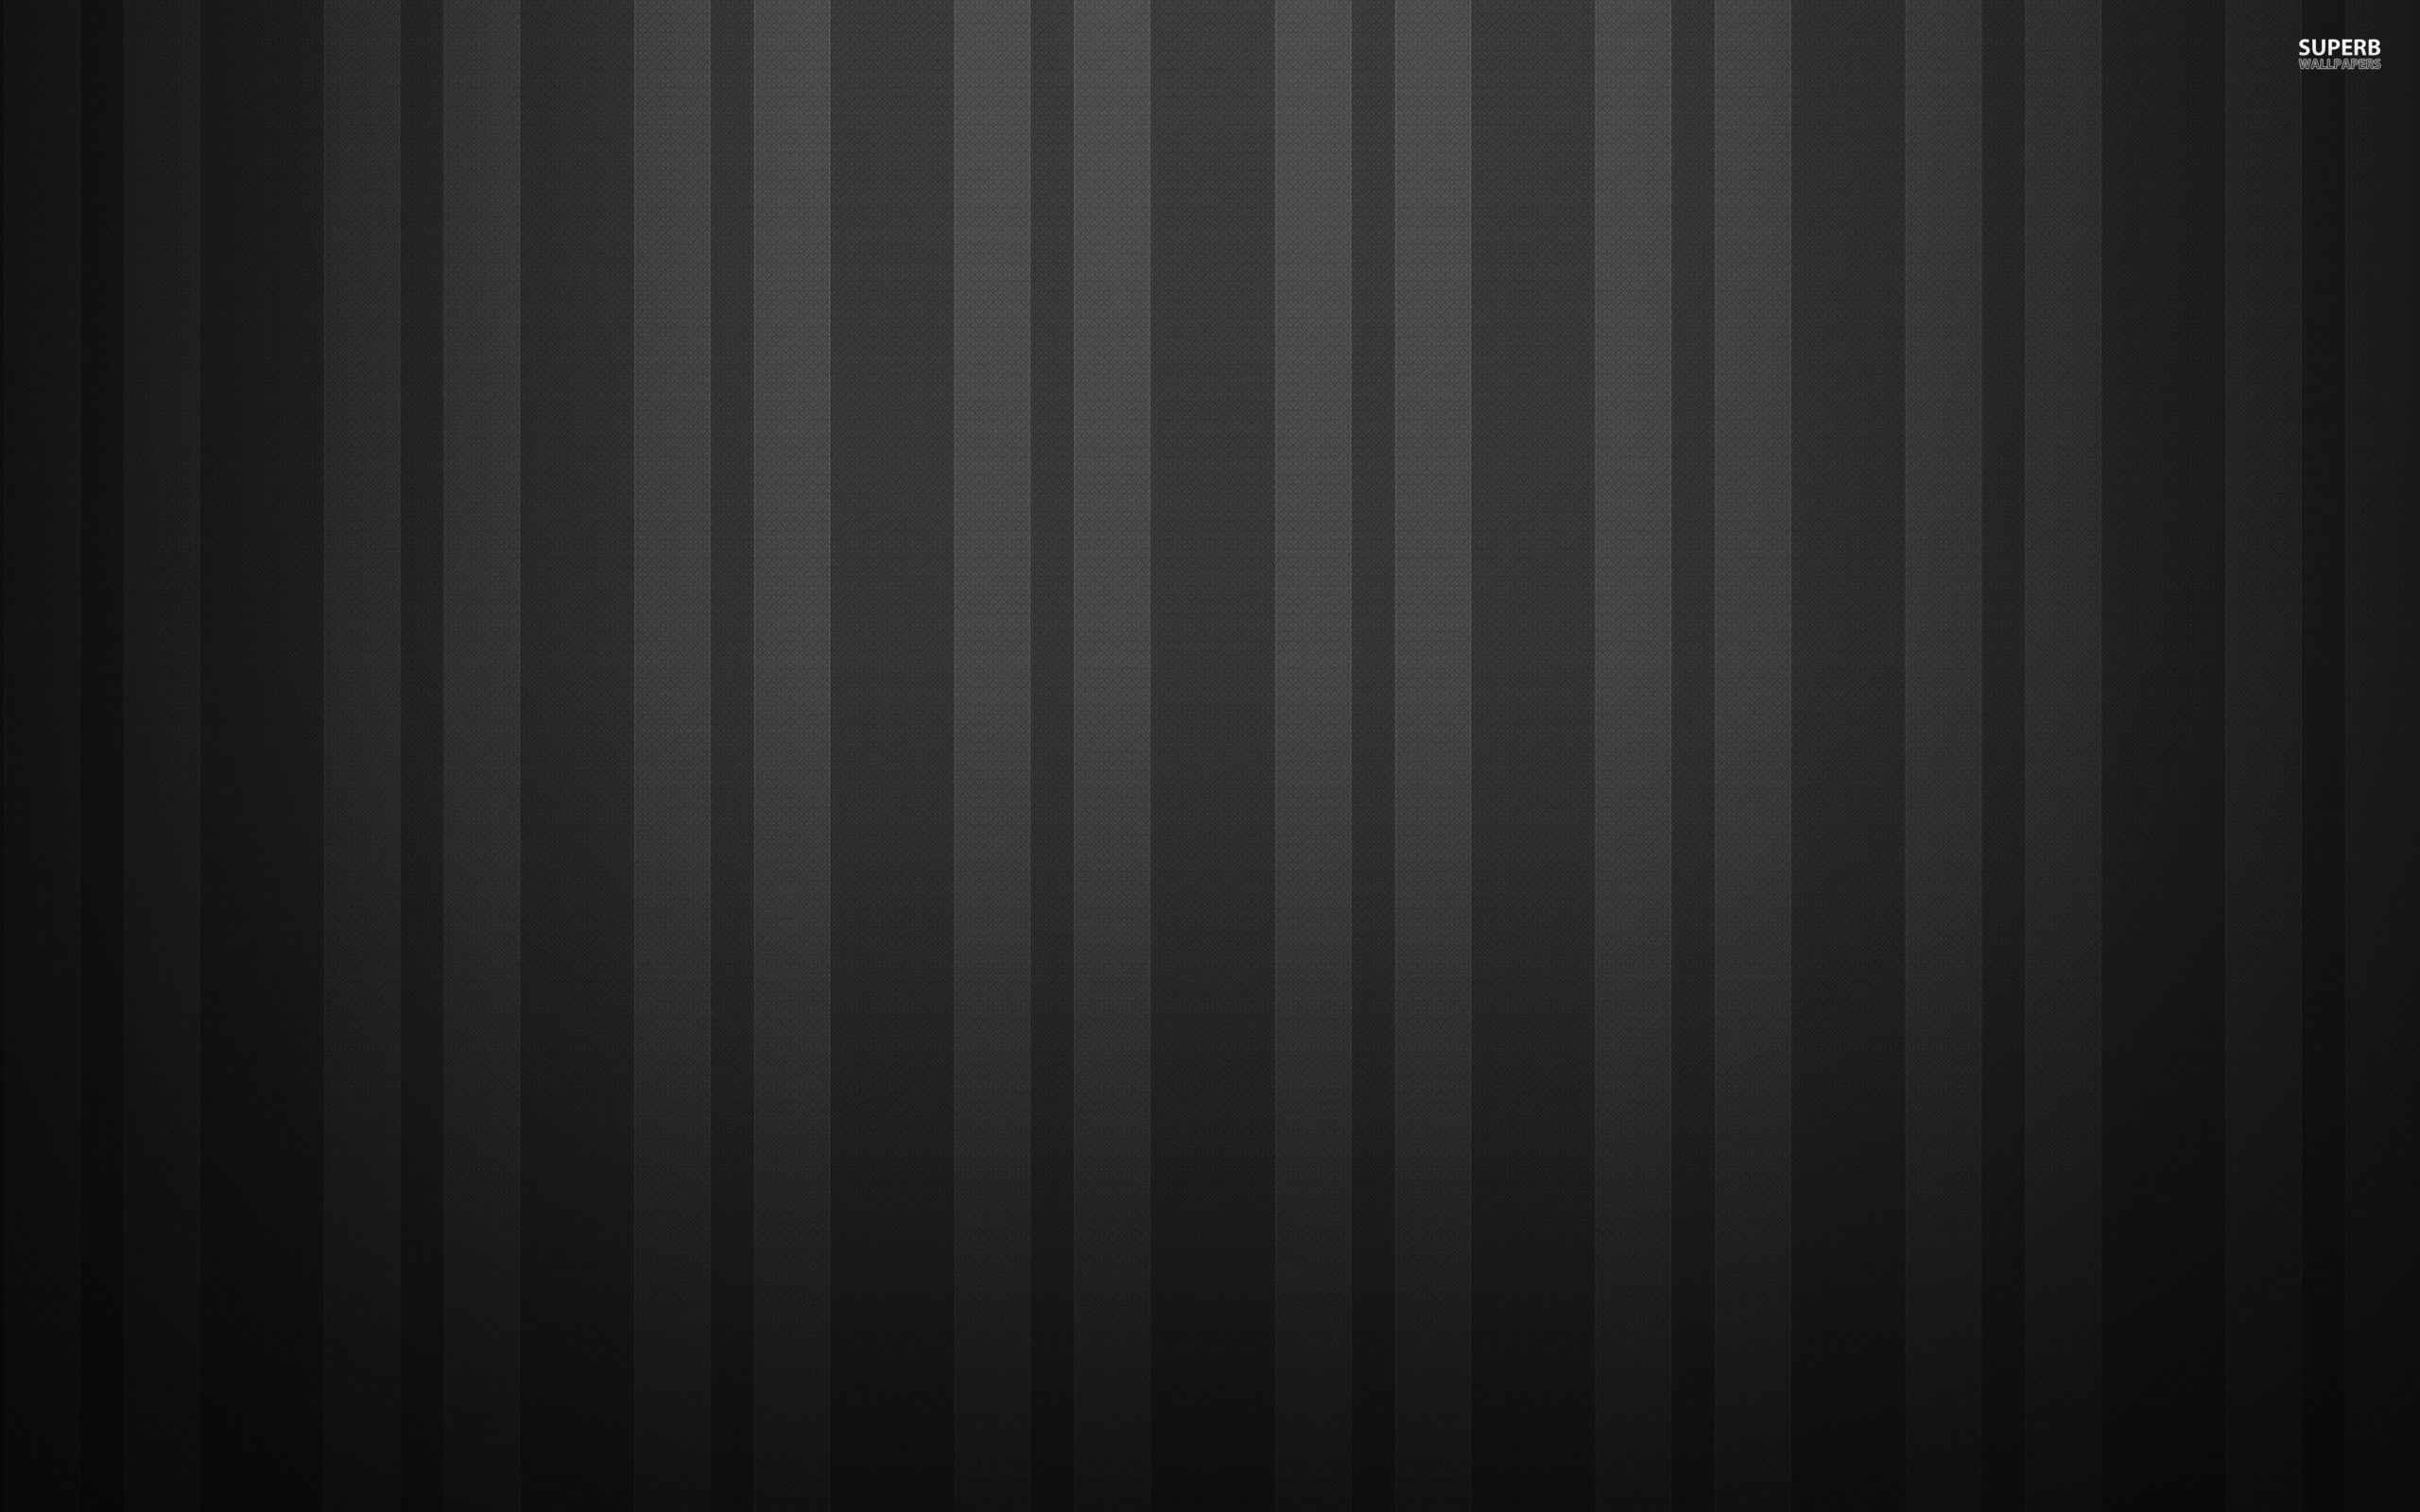 Black And Grey Striped Wallpaper   Widescreen HD Wallpapers 2560x1600